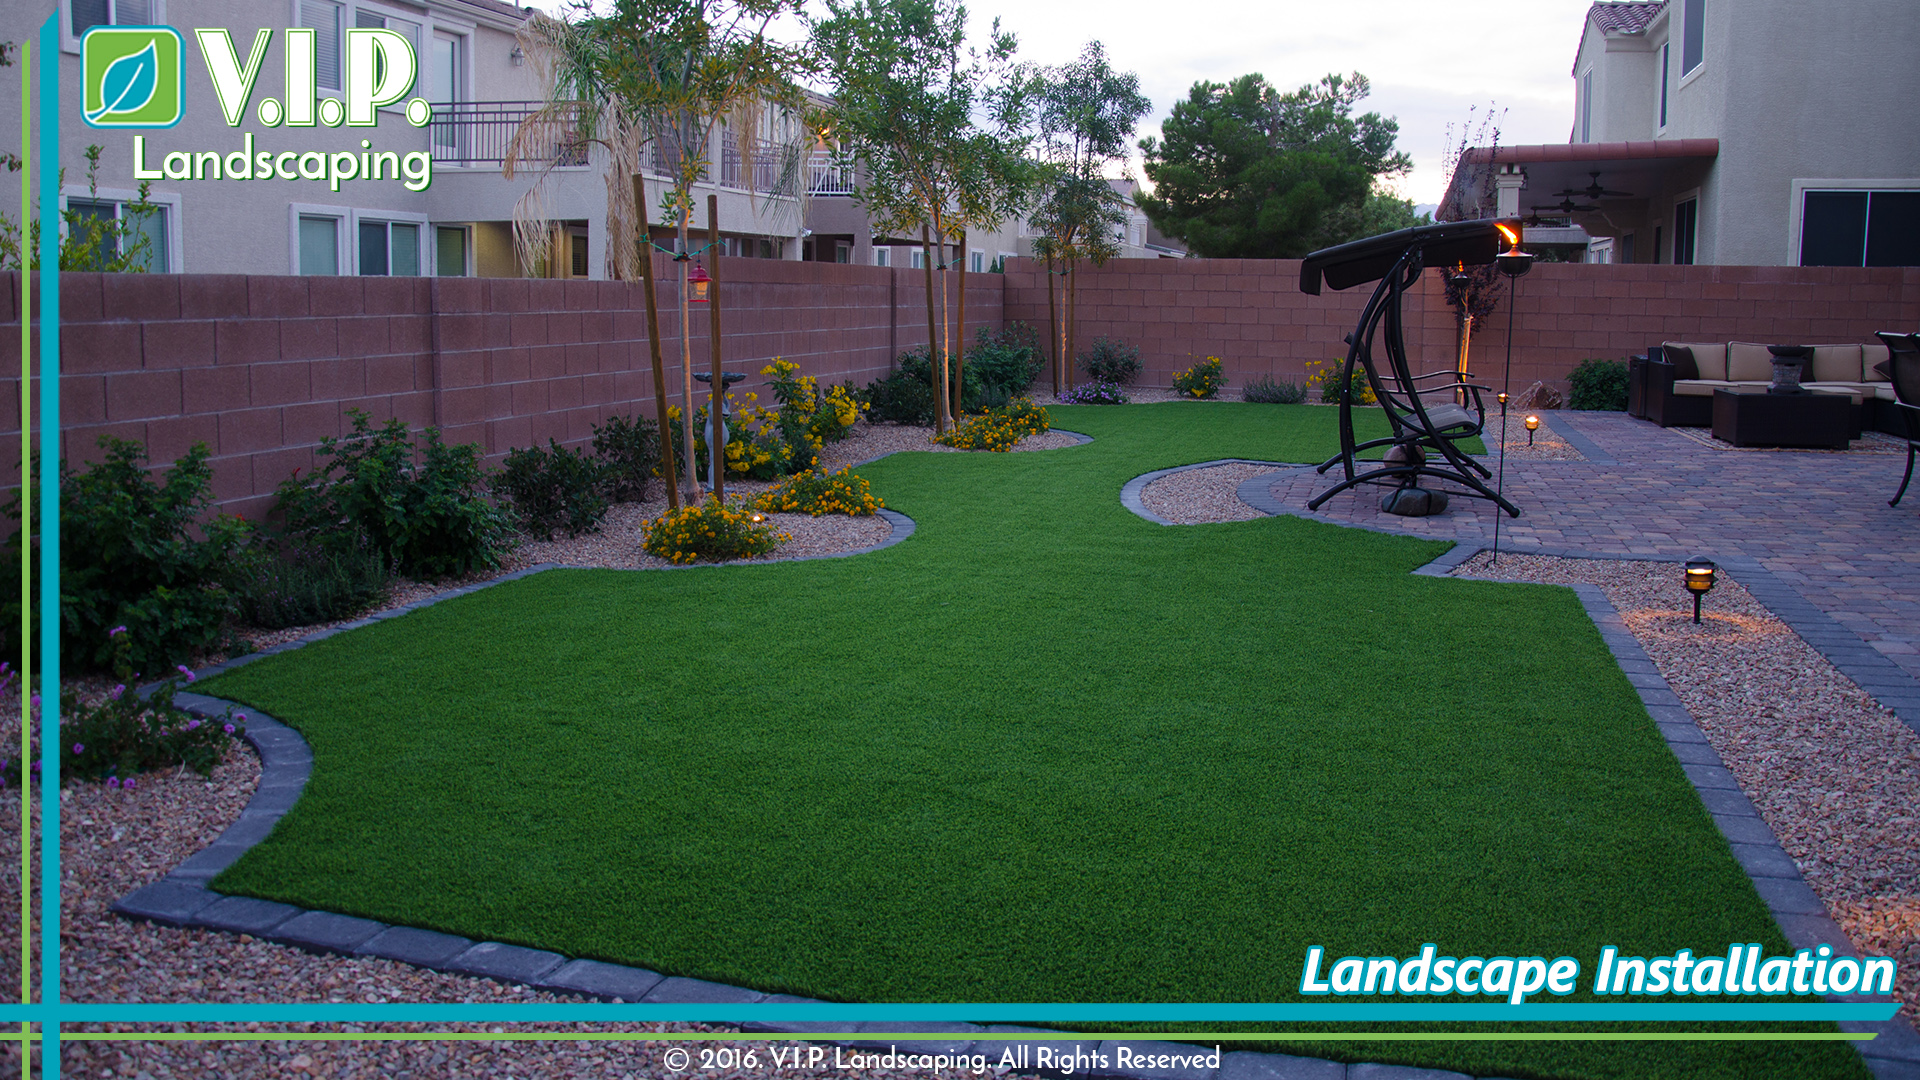 Landscaping Services in Las Vegas